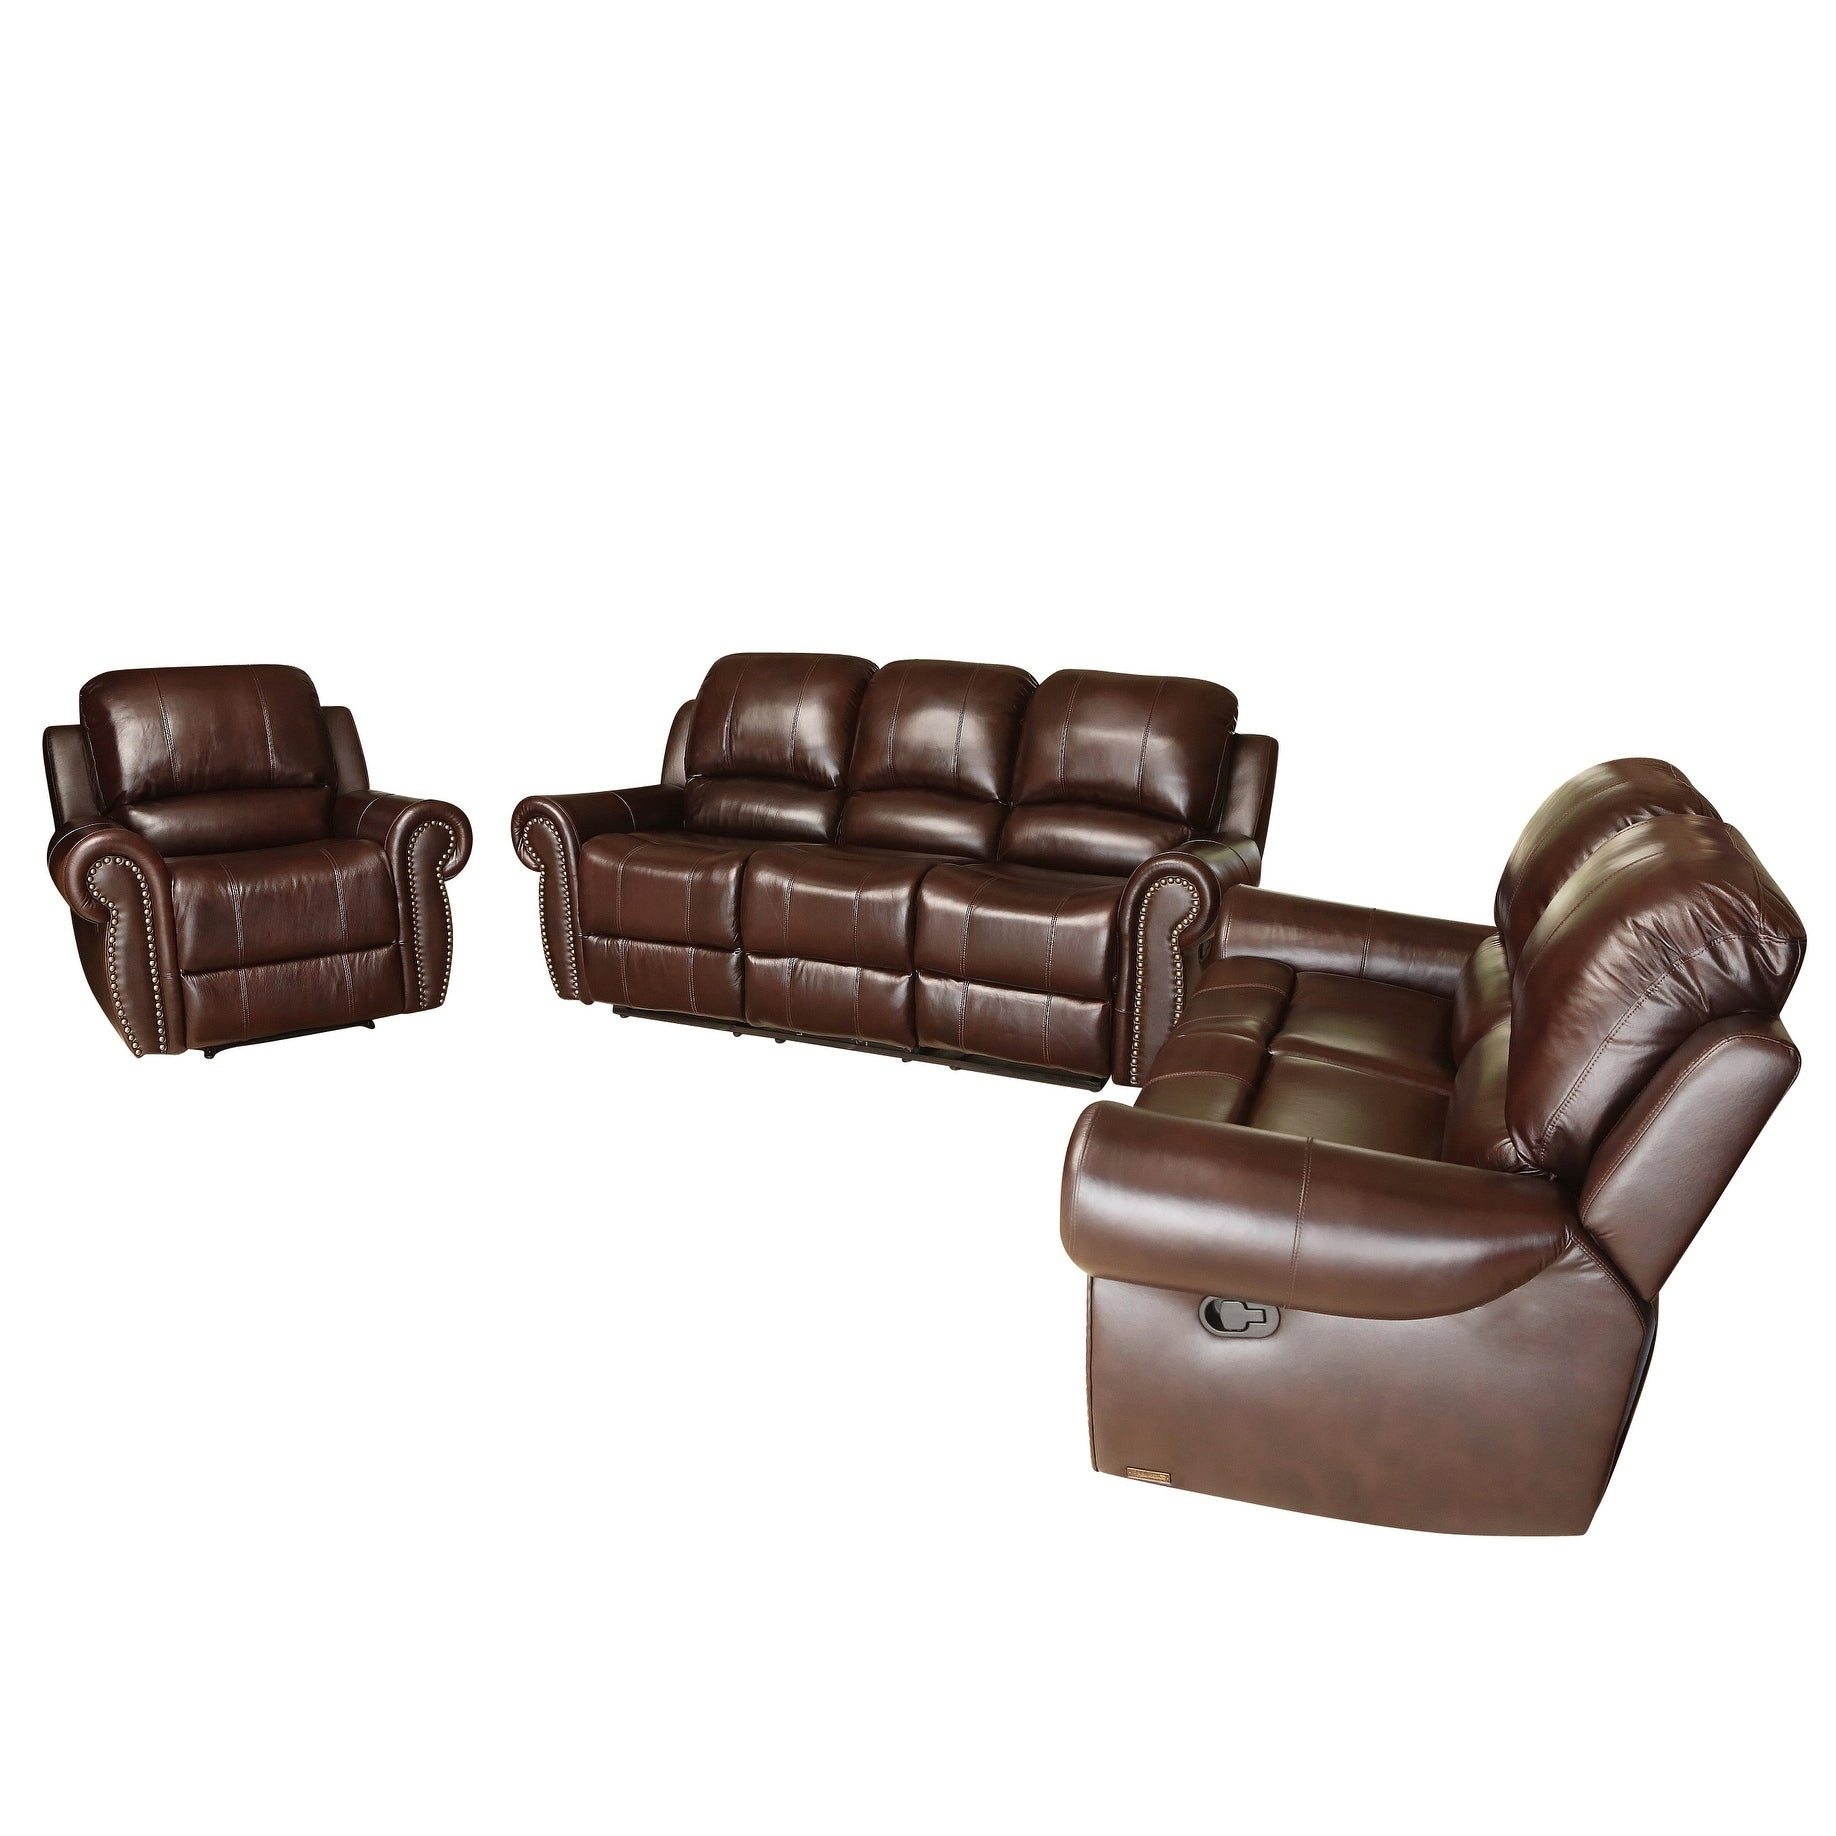 3 piece living room furniture set black gold shop abbyson broadway top grain leather reclining piece living room set on sale free shipping today overstockcom 4493692